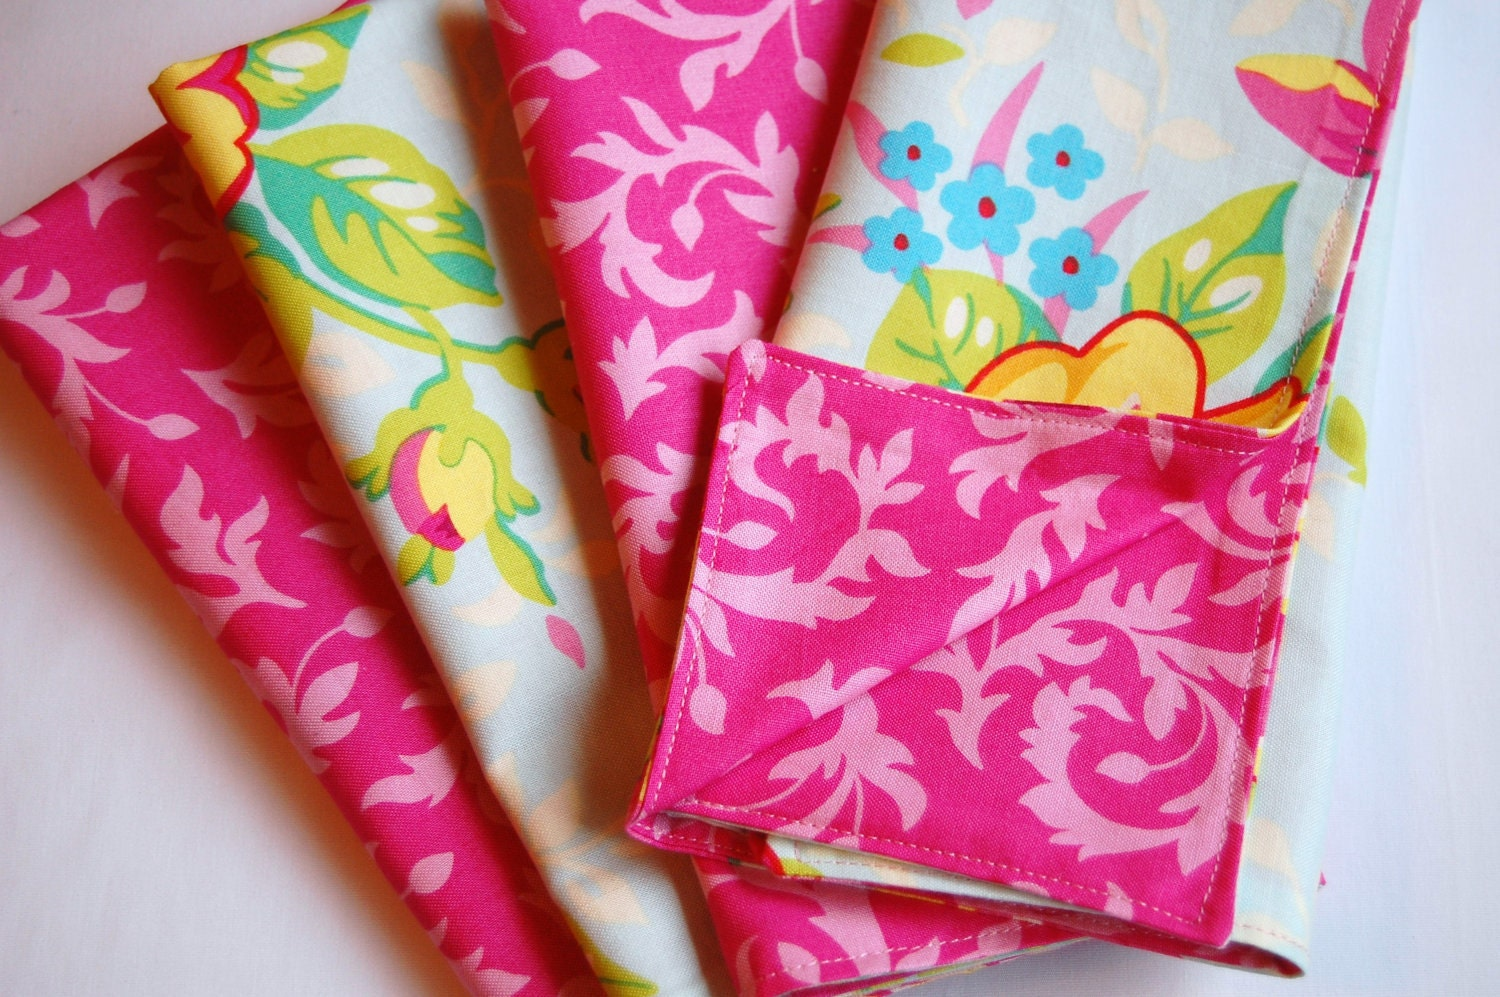 REVERSIBLE Floral Aqua Pink Fabric Napkins, Heather Bailey Pop Garden, Eco Friendly Cloth, Reusable, Set of 4, Lunch, Dinner